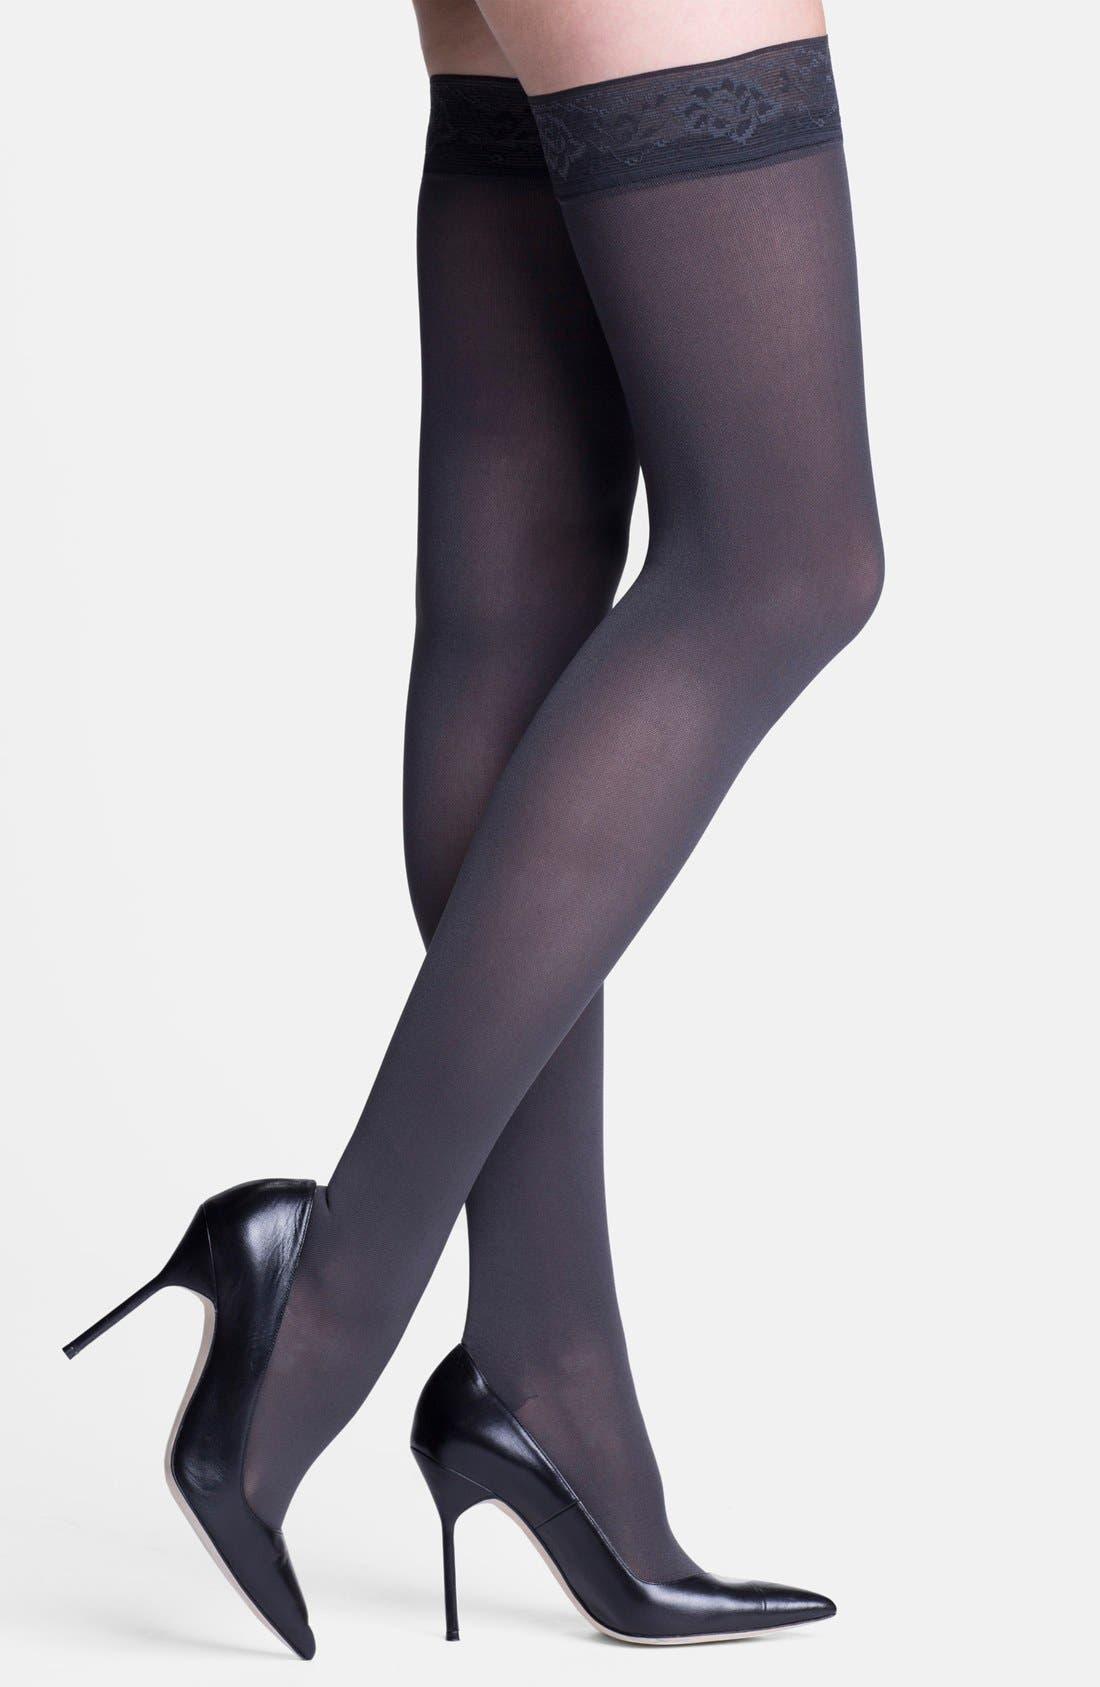 039c9bc3c32 Stockings All Women